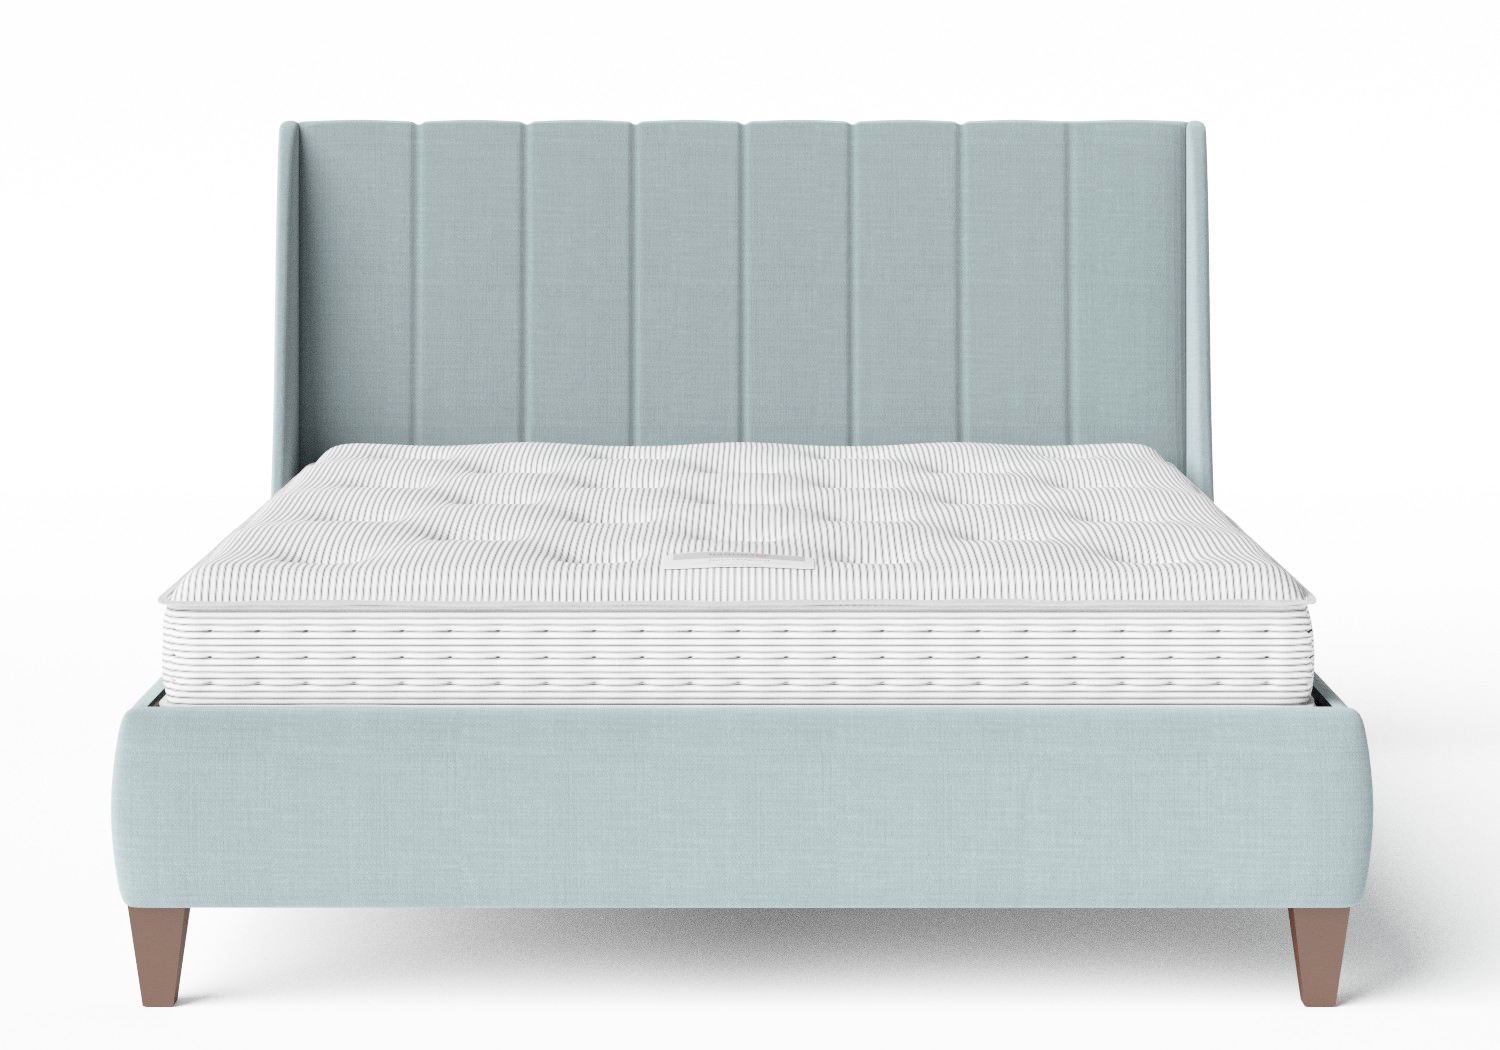 Sunderland Upholstered bed in Wedgewood fabric shown with Juno 1 mattress